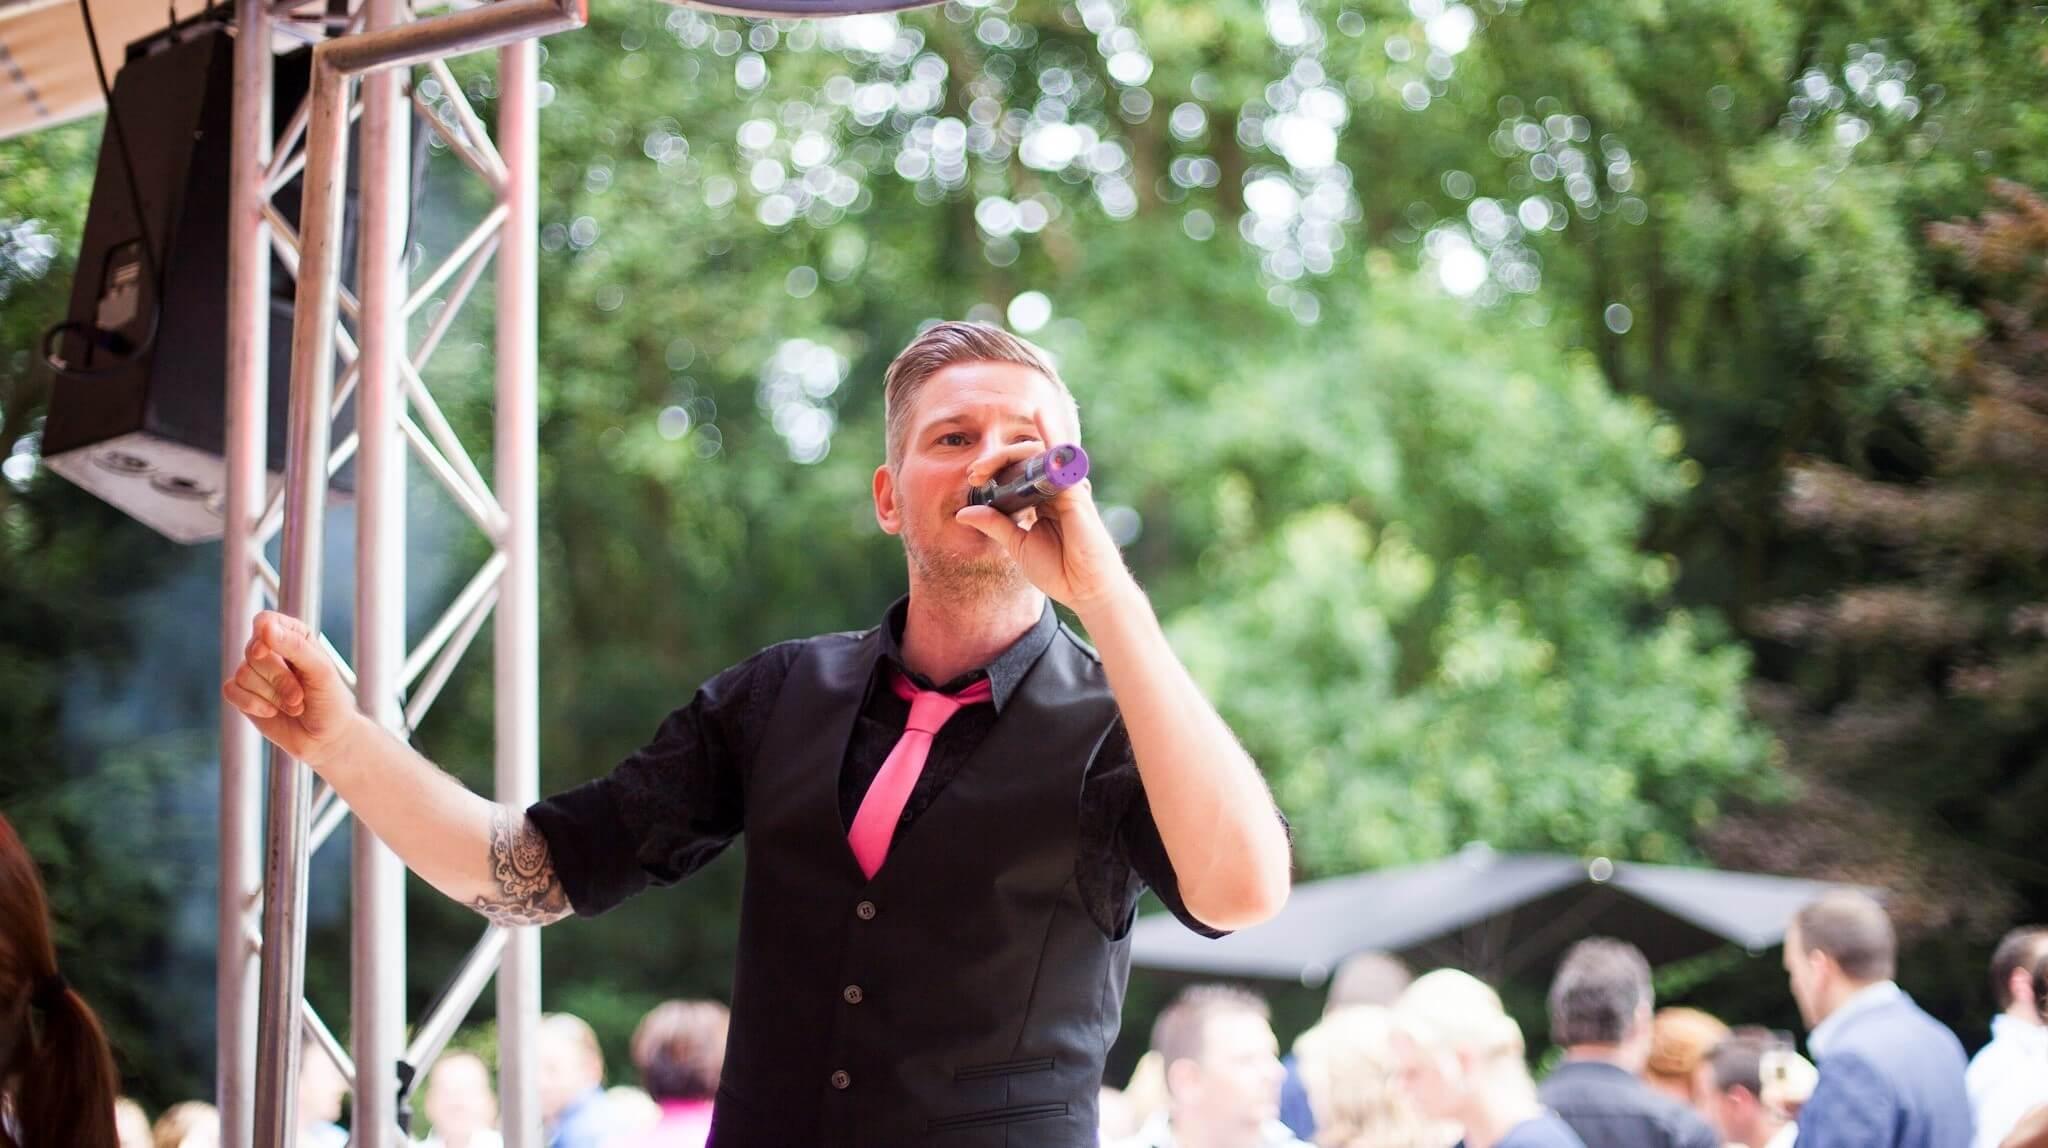 feest, blog, catering, entertainment